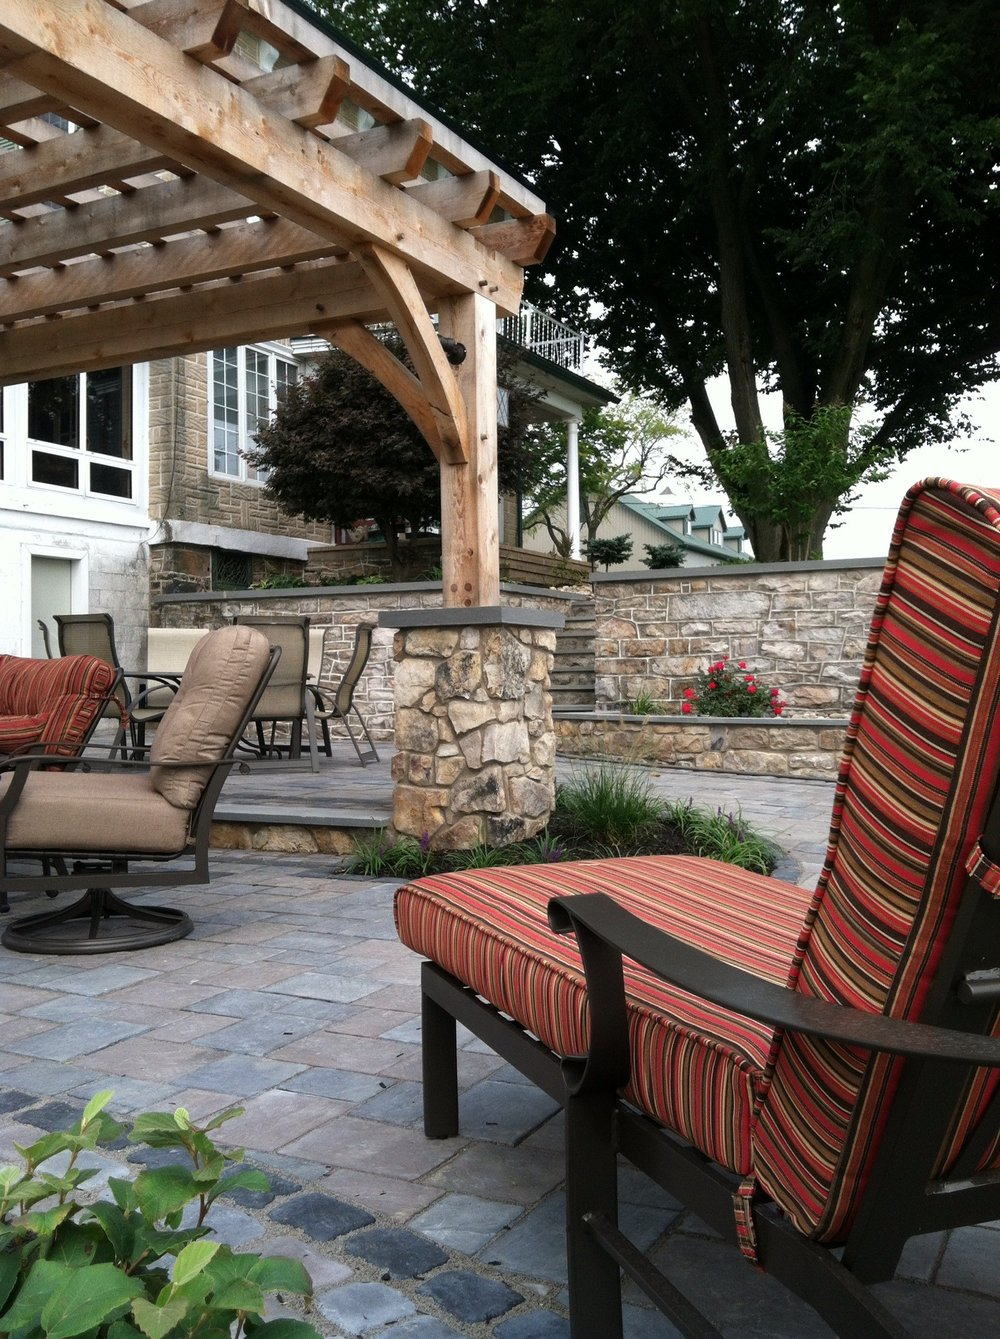 Experienced landscape patio ideas in Lebanon County, PA